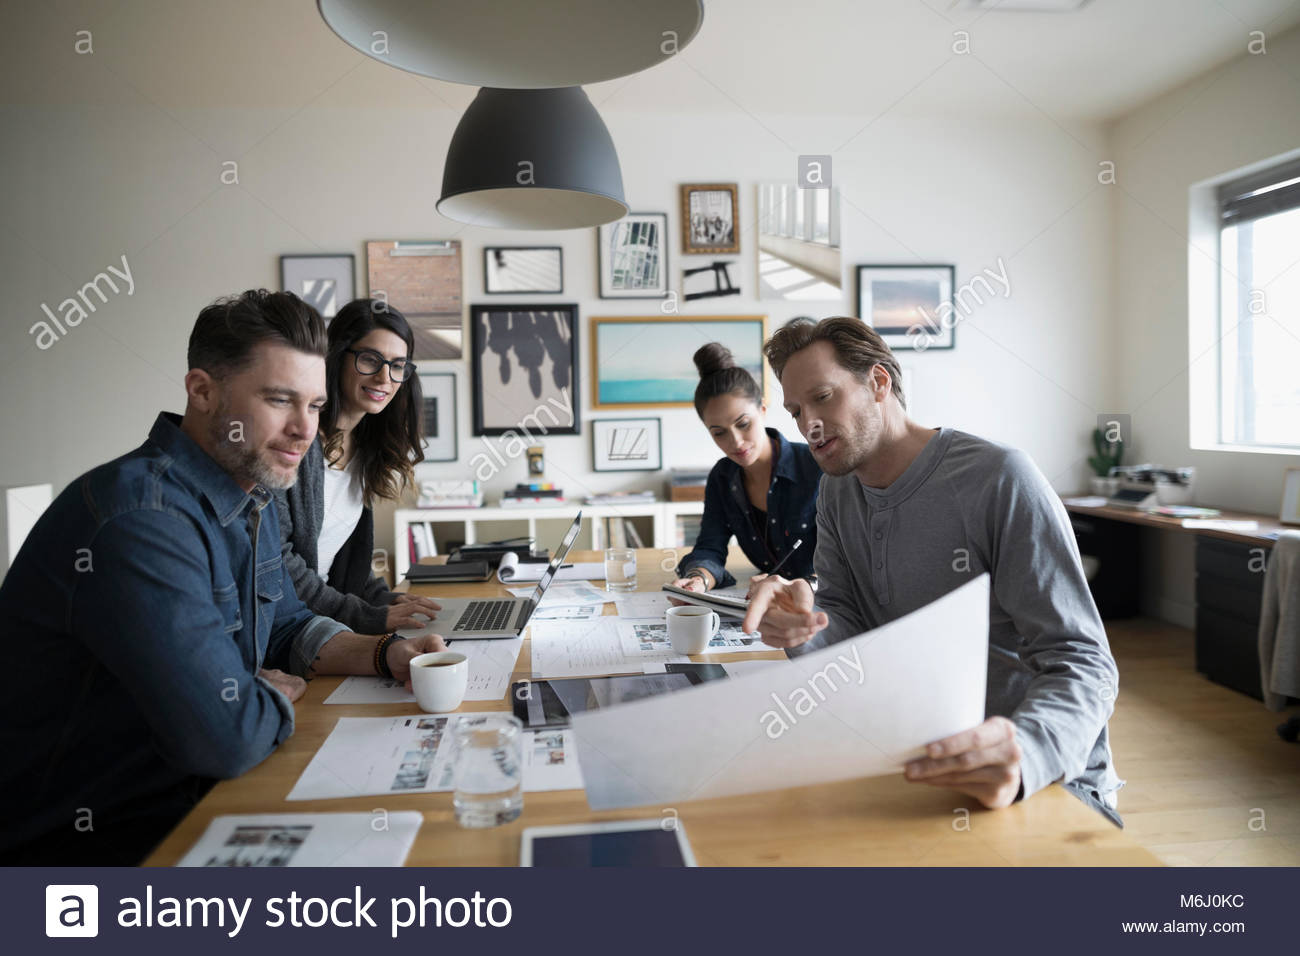 Photo editor production team reviewing photo proofs in office meeting Stock Photo